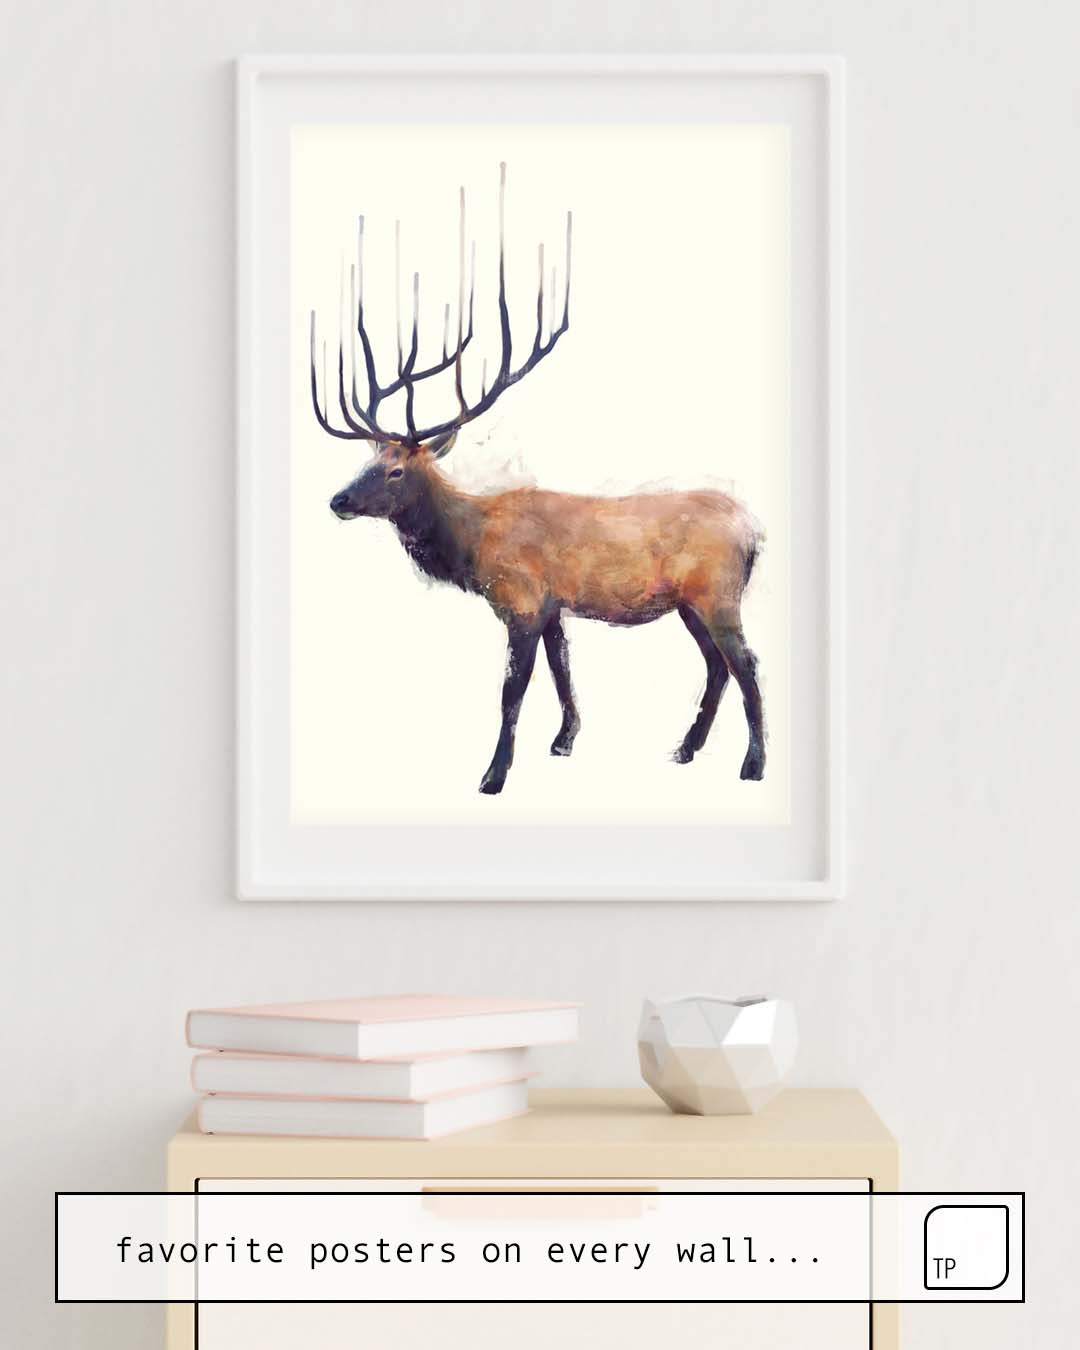 Poster   ELK // REFLECT (LEFT) by Amy Hamilton